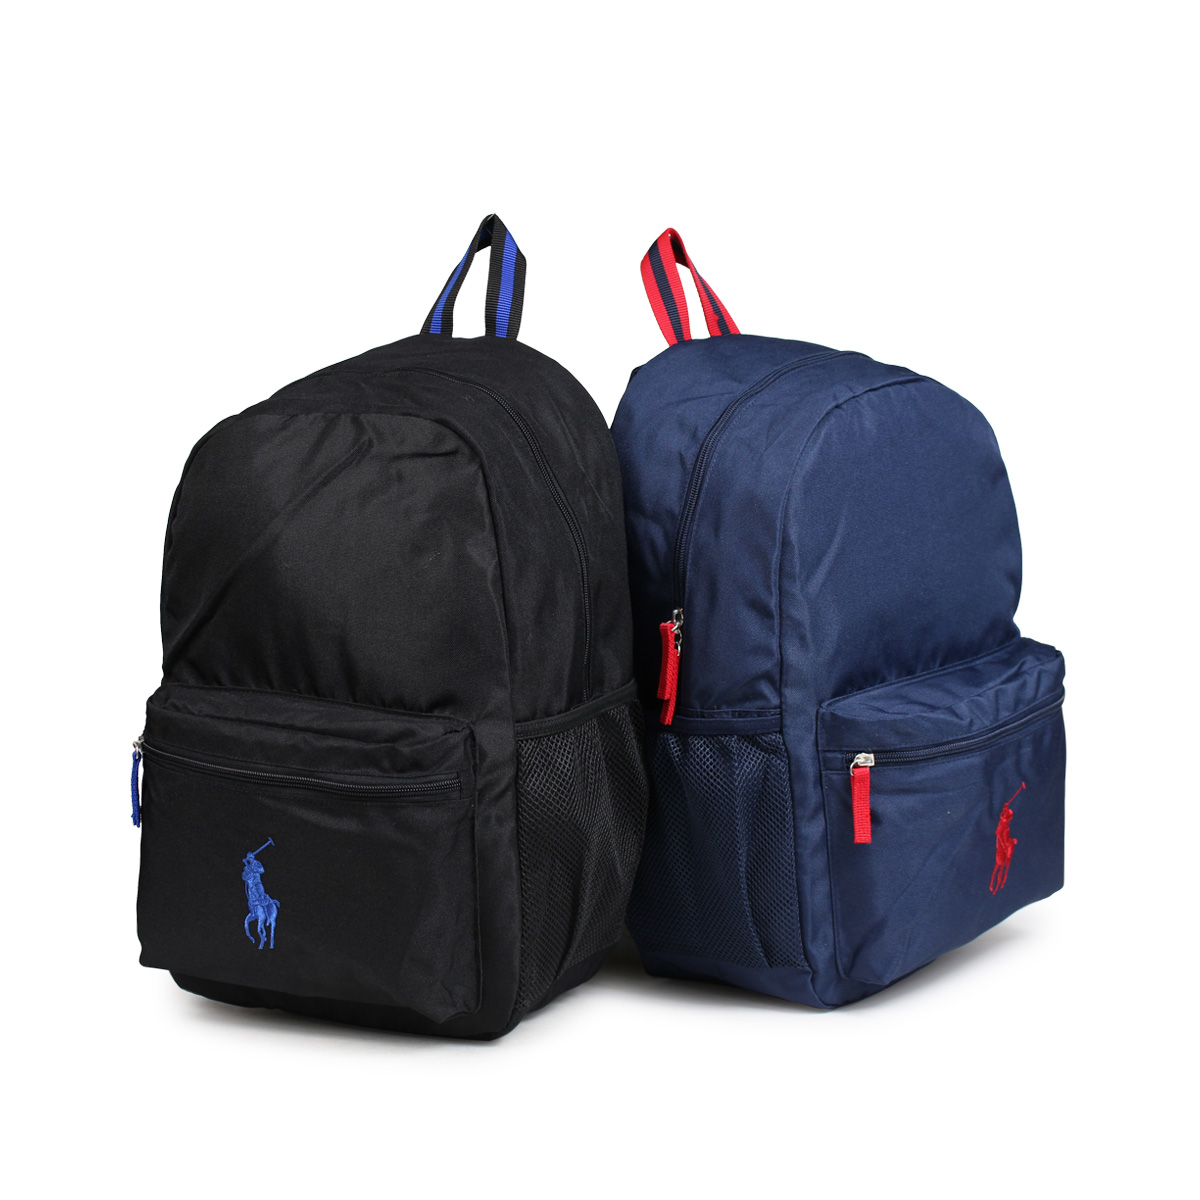 POLO RALPH LAUREN RA10012 polo Ralph Lauren bag rucksack backpack kids  black navy  12 20 Shinnyu load  bd18525eb041f